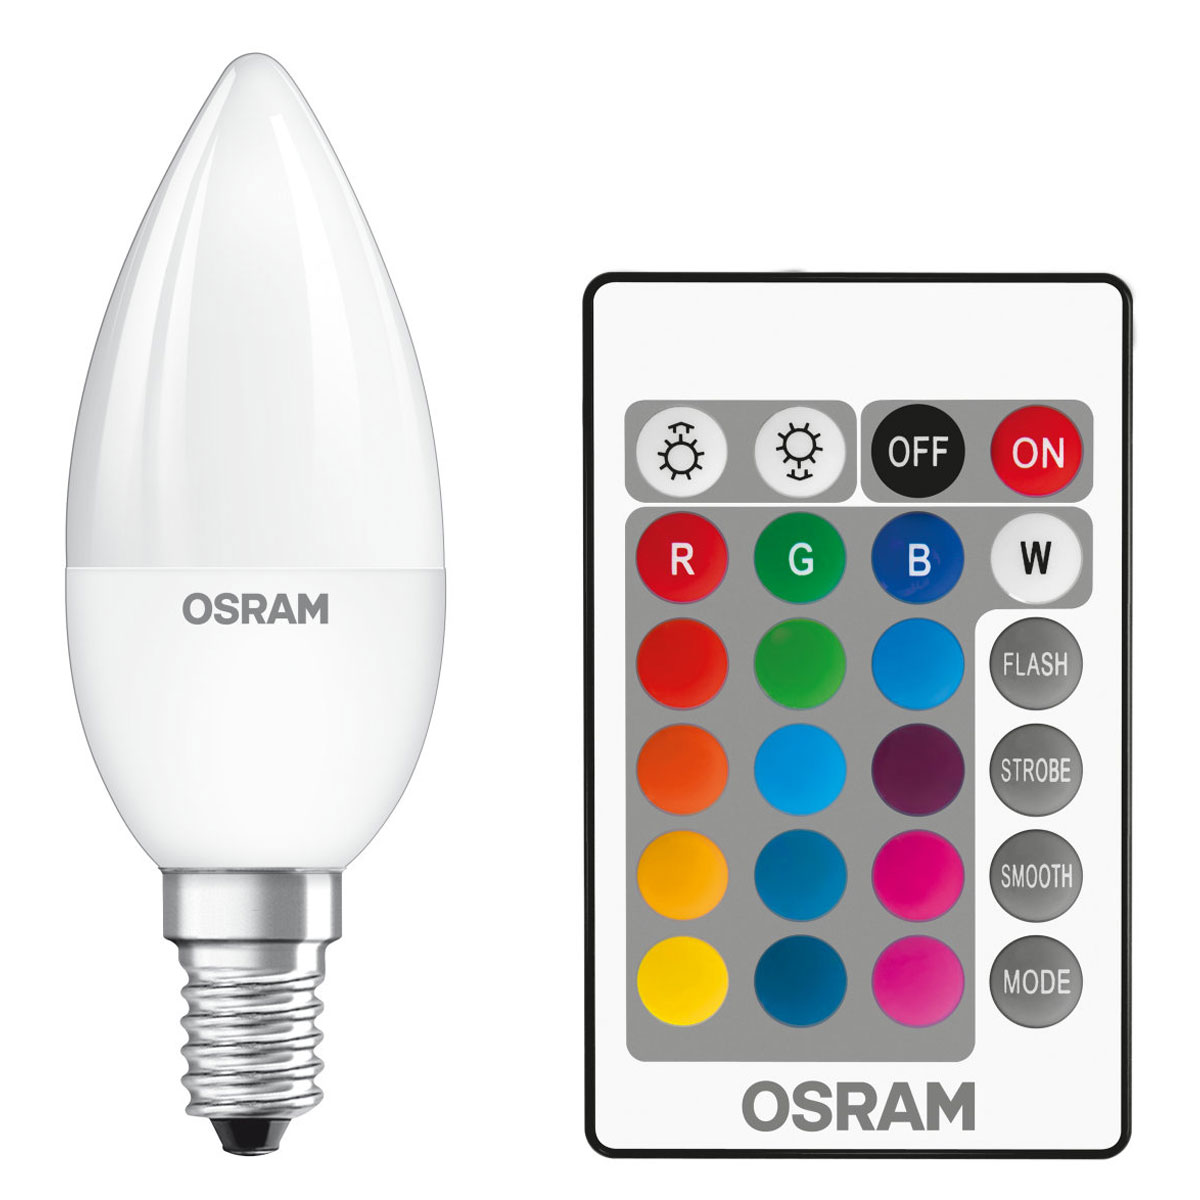 osram ampoule led retrofit rgbw flamme t l commande e14 4 5w 25w a ampoule led osram sur. Black Bedroom Furniture Sets. Home Design Ideas